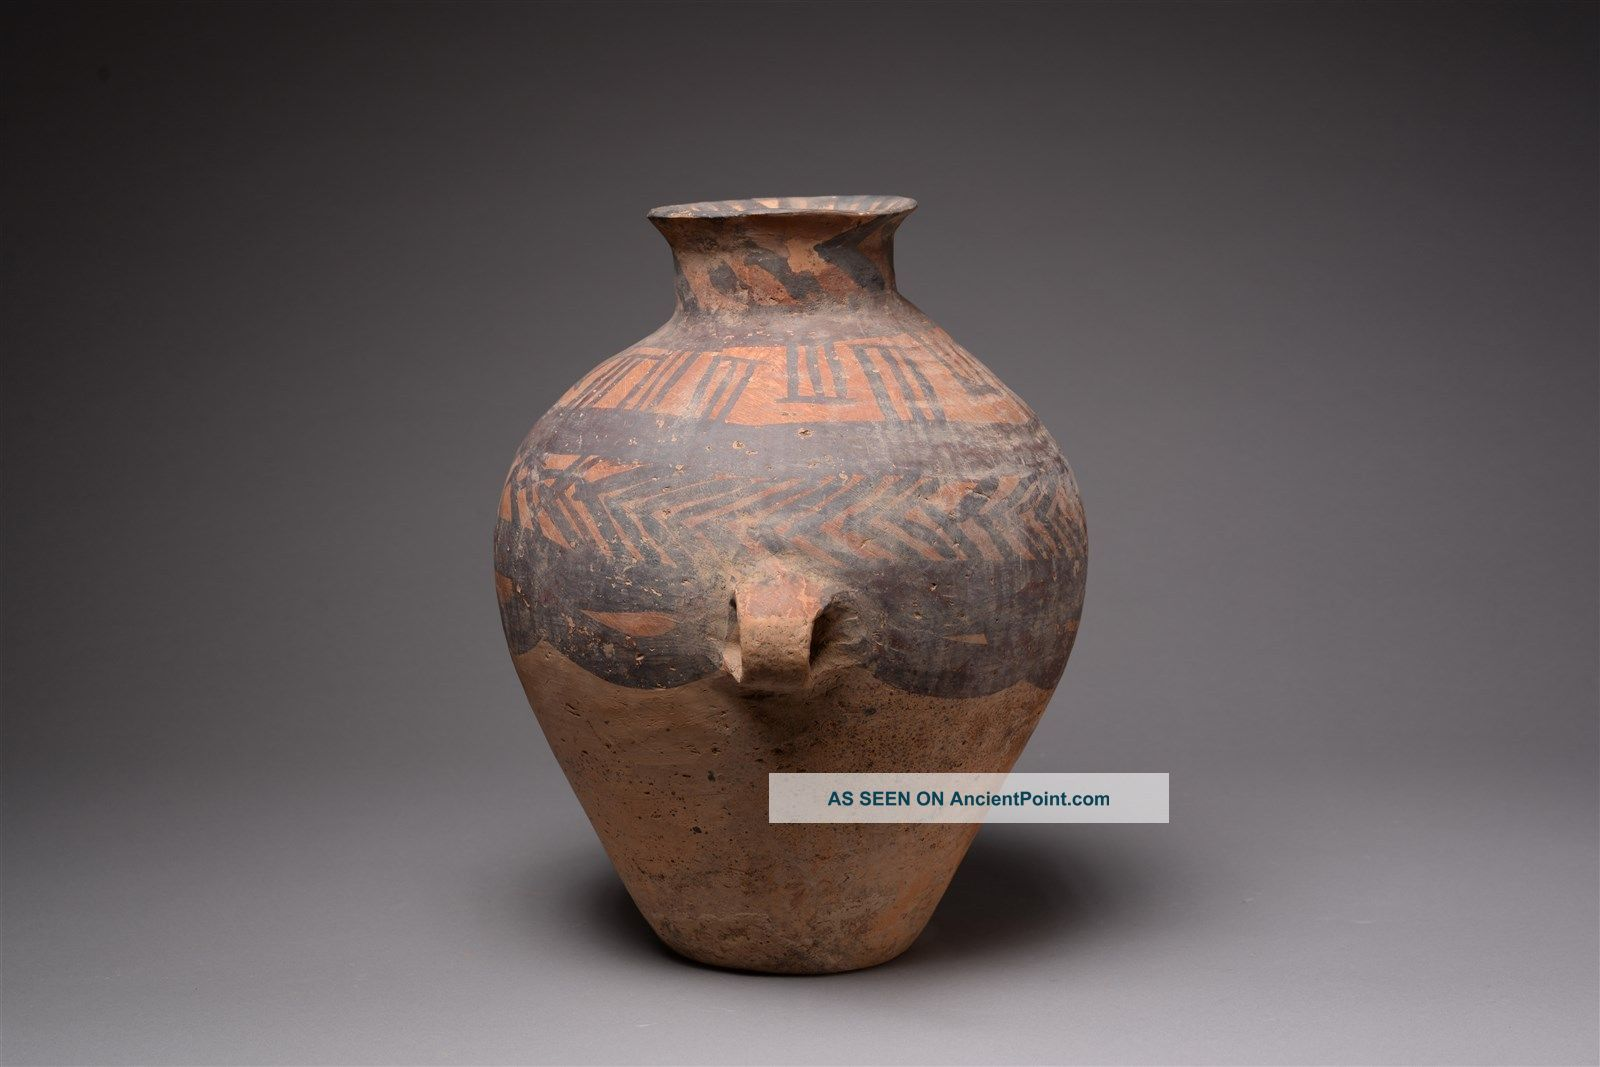 Ancient chinese neolithic yangshao culture pottery amphora vase ancient chinese neolithic yangshao culture pottery amphora vase 3000 bc reviewsmspy